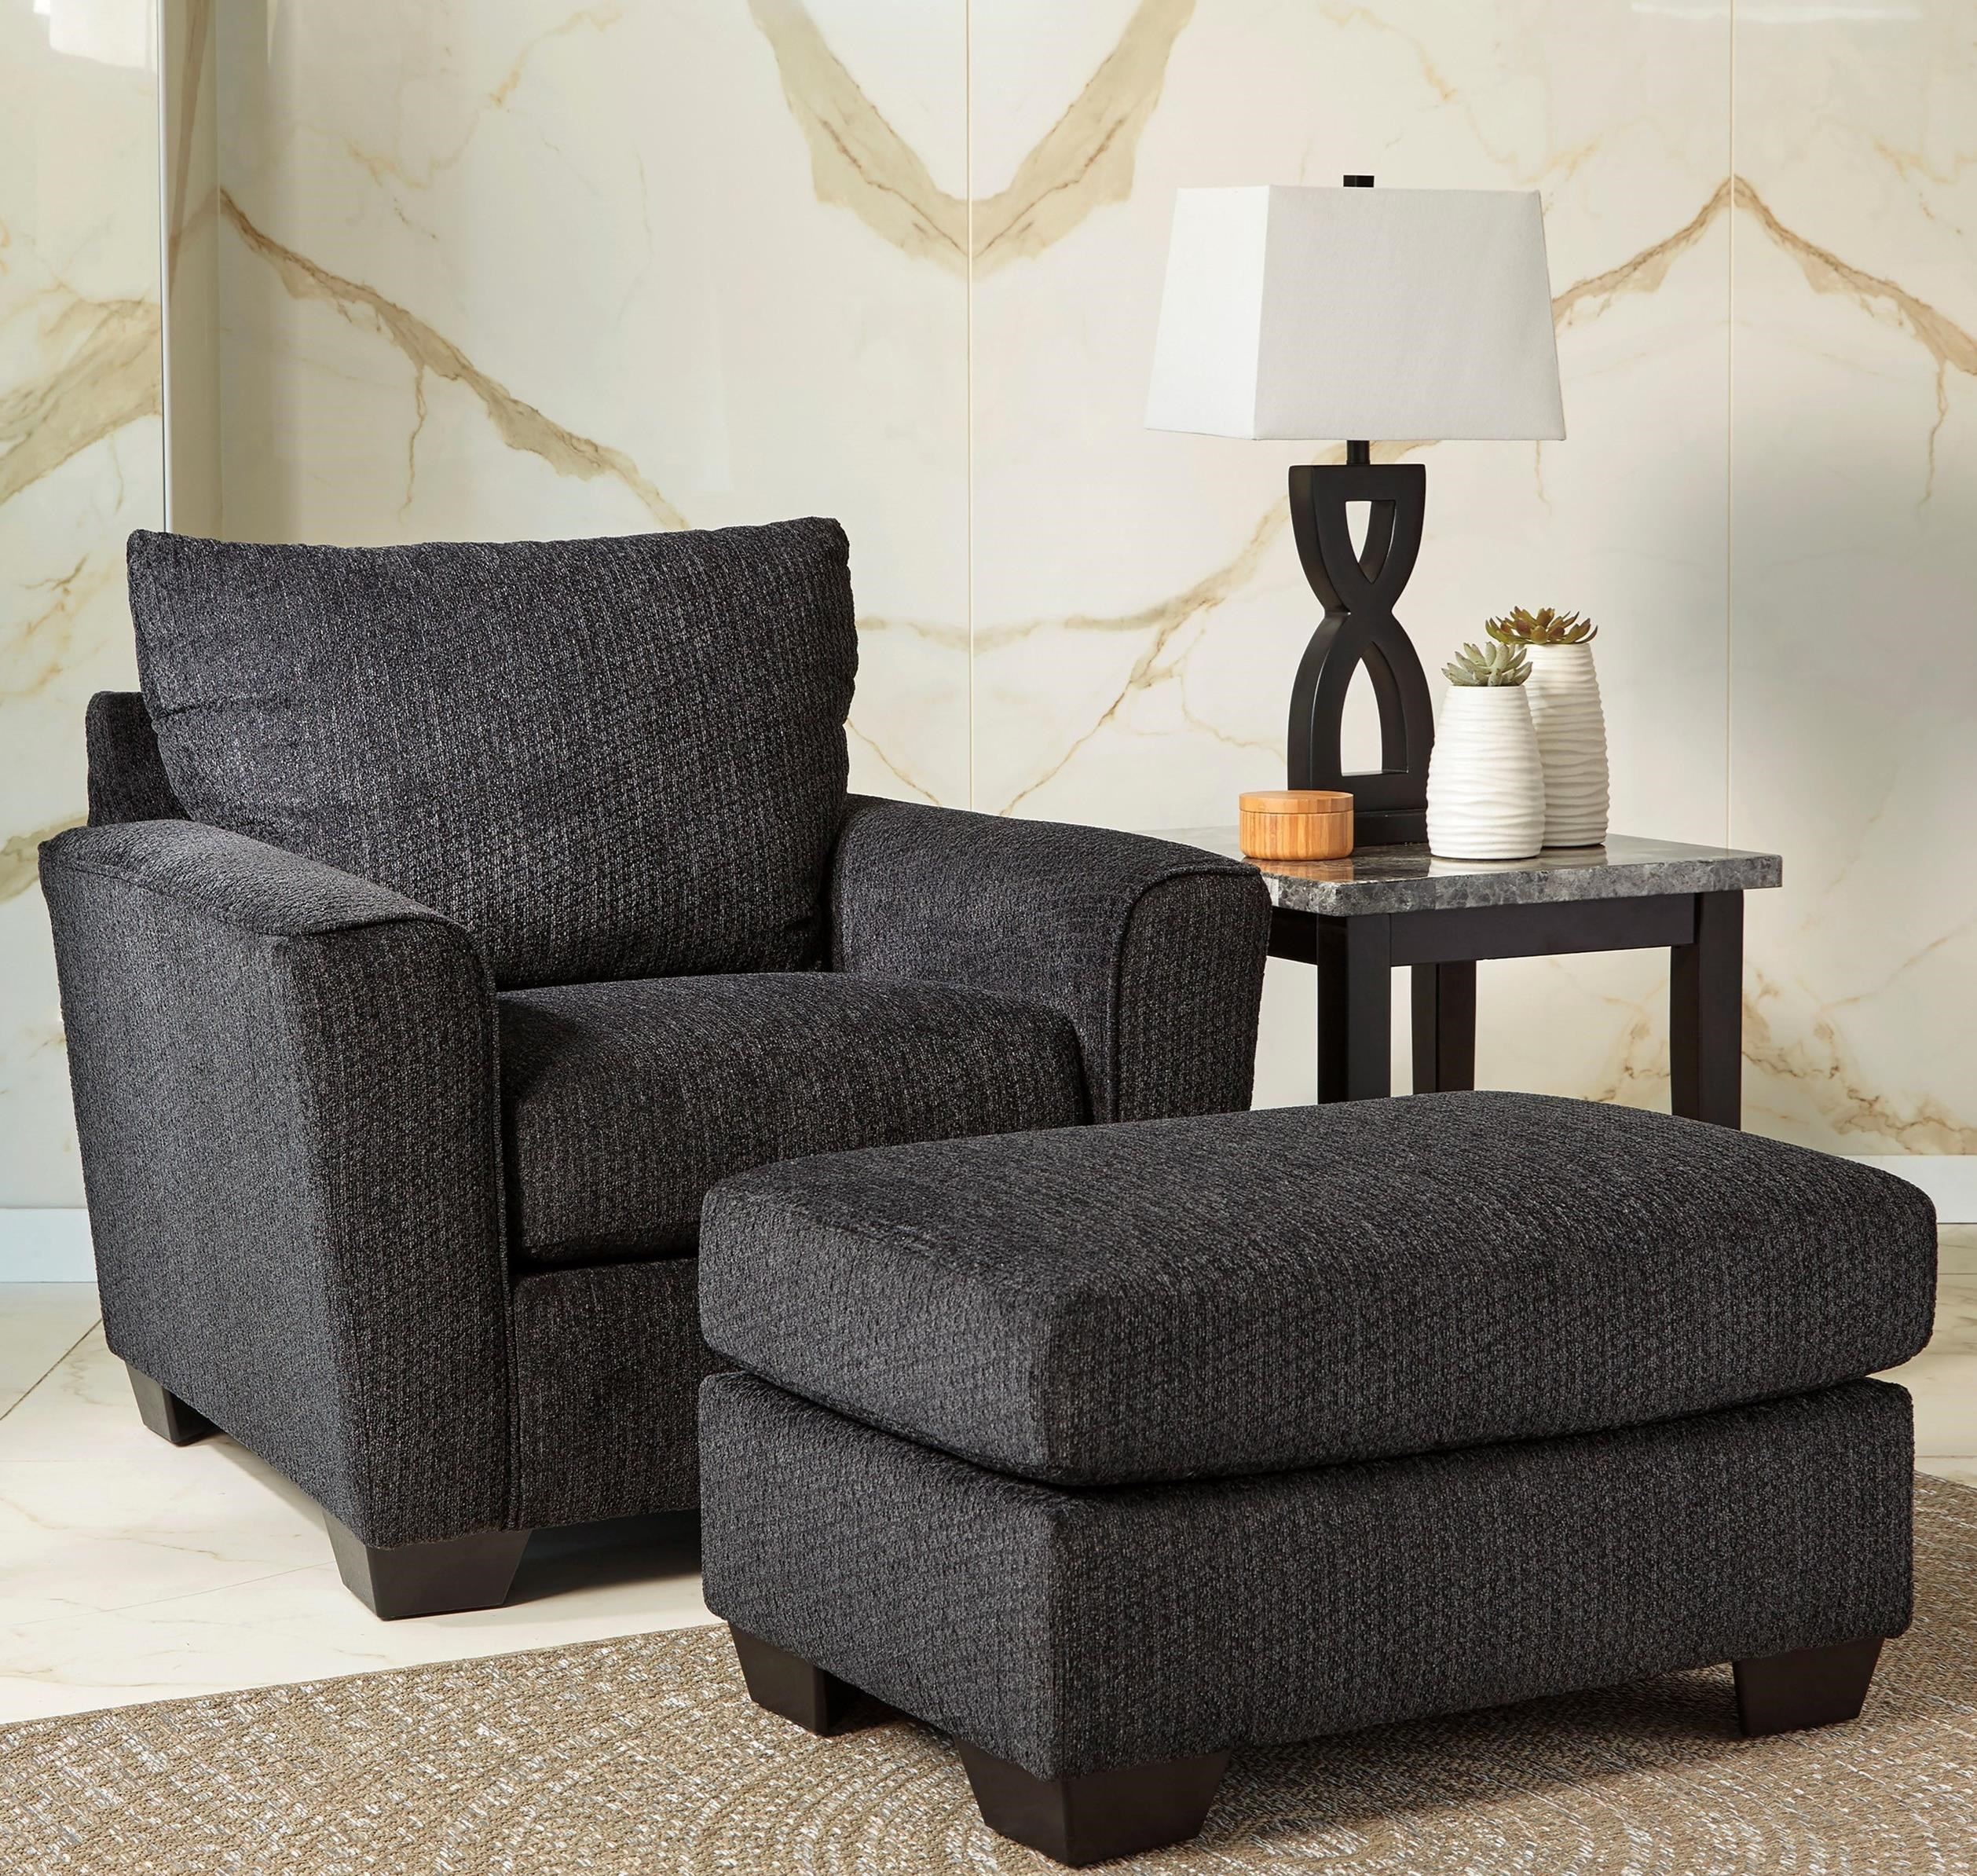 Wixon Chair & Ottoman by Benchcraft at Miller Waldrop Furniture and Decor